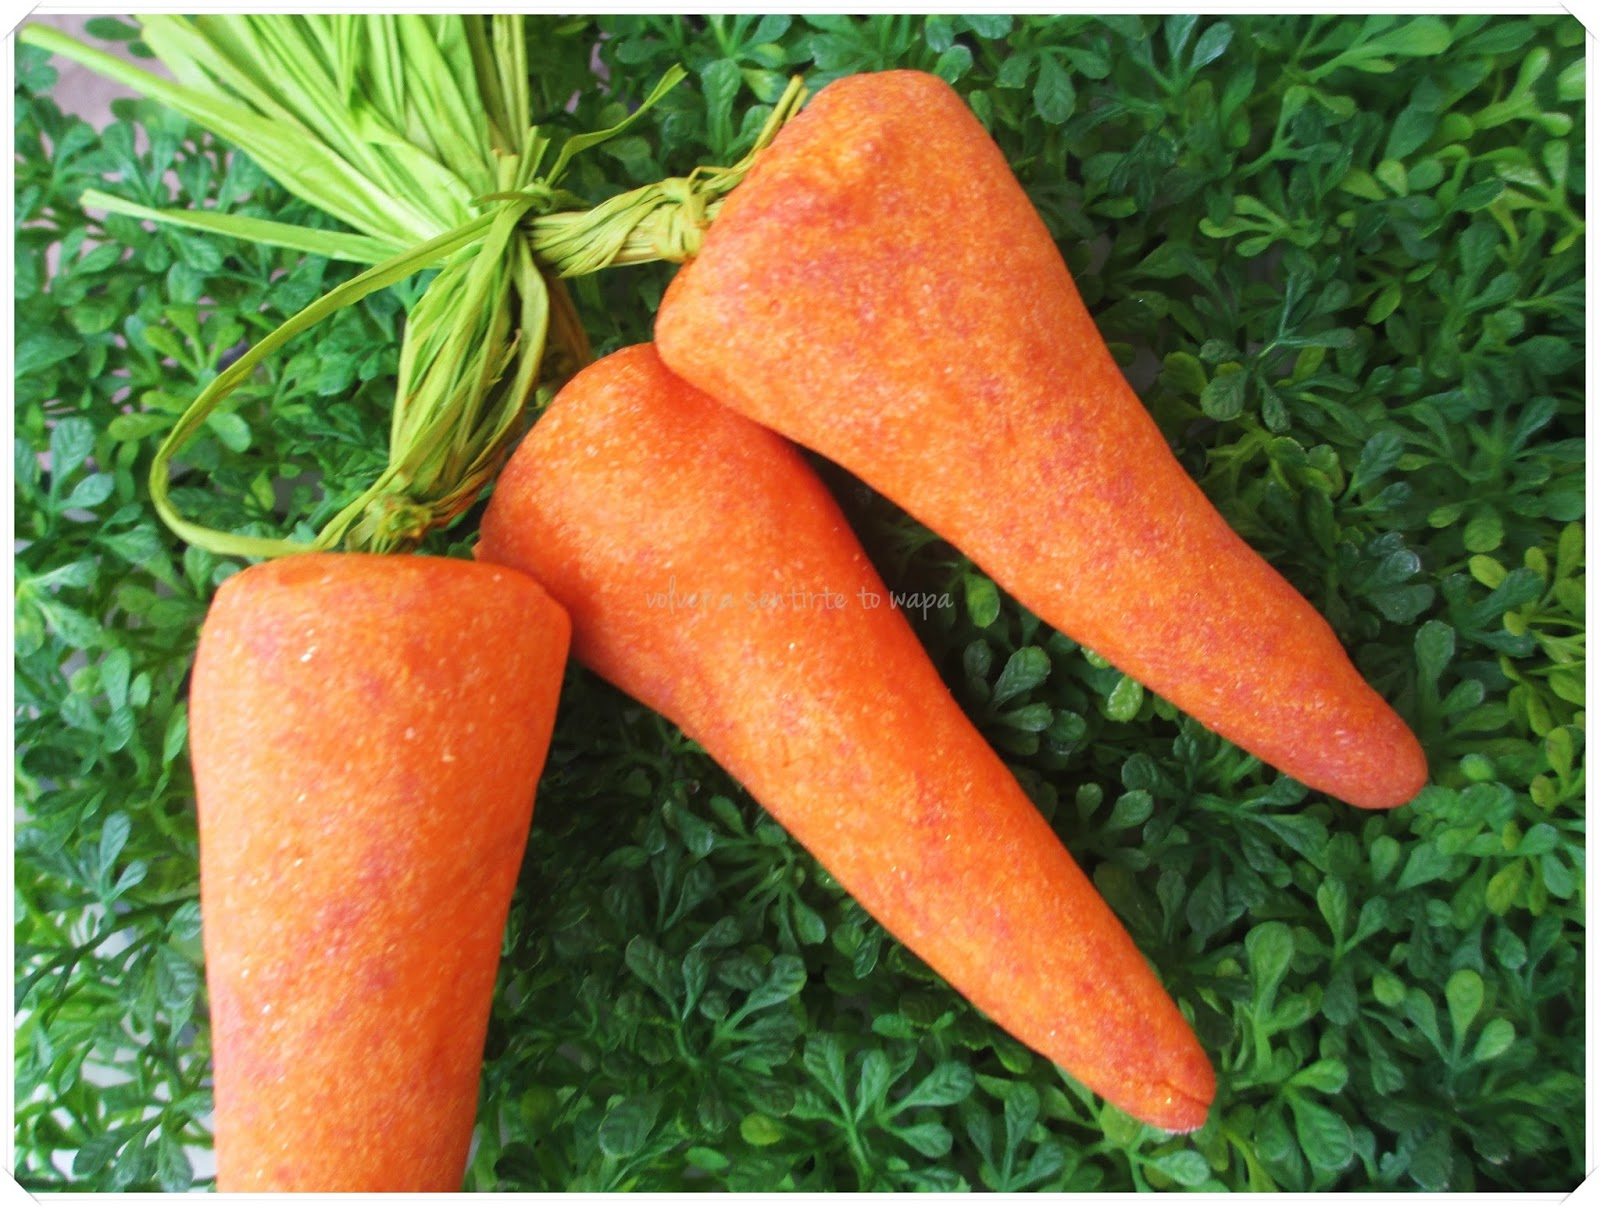 Lush - Burbuja reutilizable Bunch of Carrots